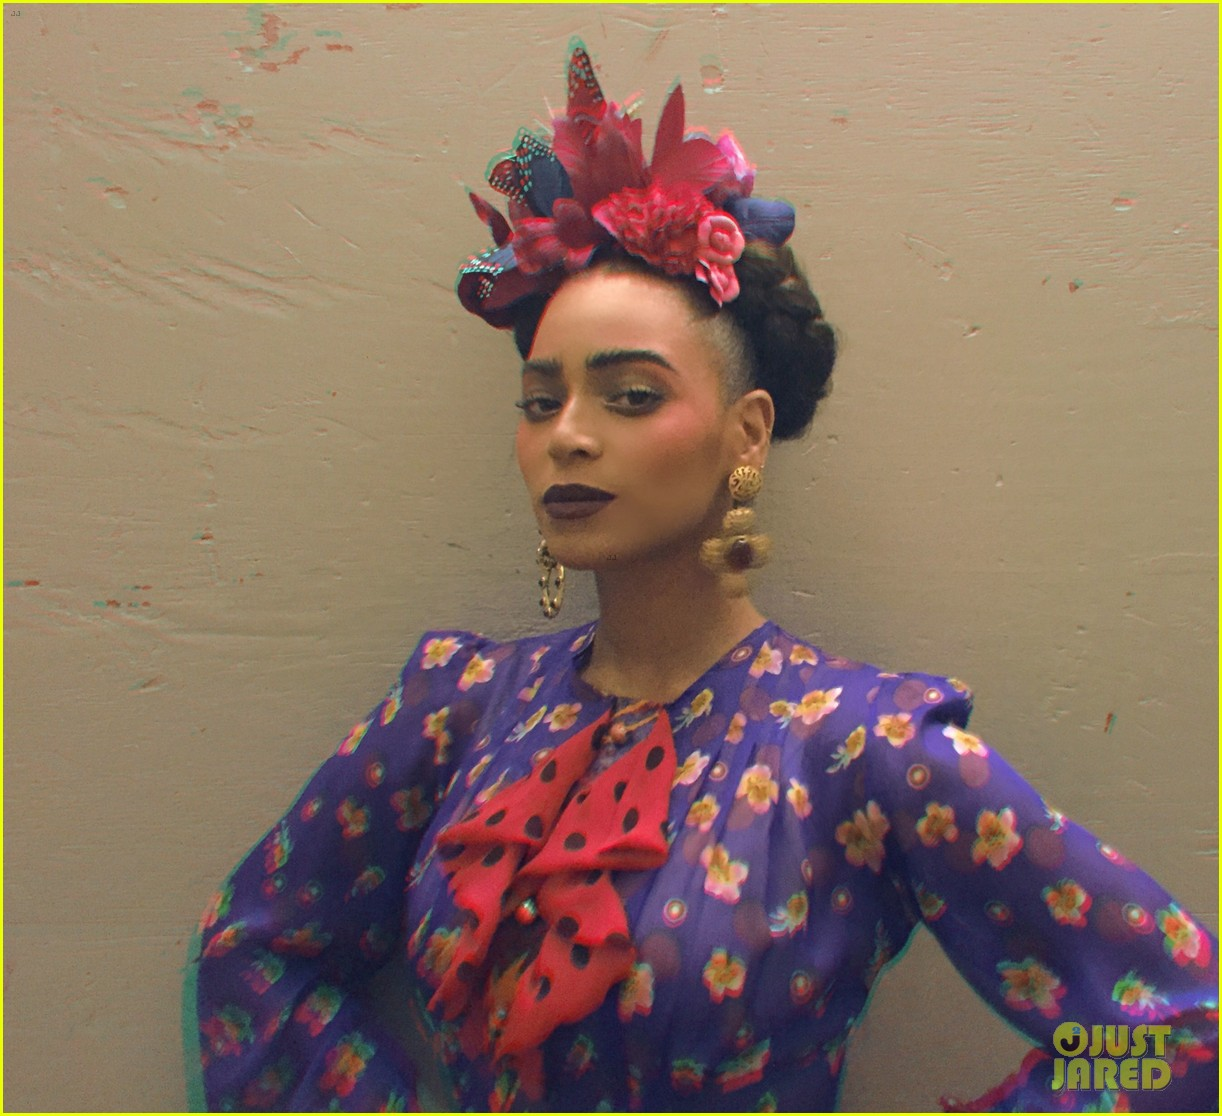 beyonce stuns as frida kahlo for second halloween costume photo 3234689 2014 halloween beyonce knowles blue ivy carter celebrity babies - Oprah Winfrey Halloween Costume